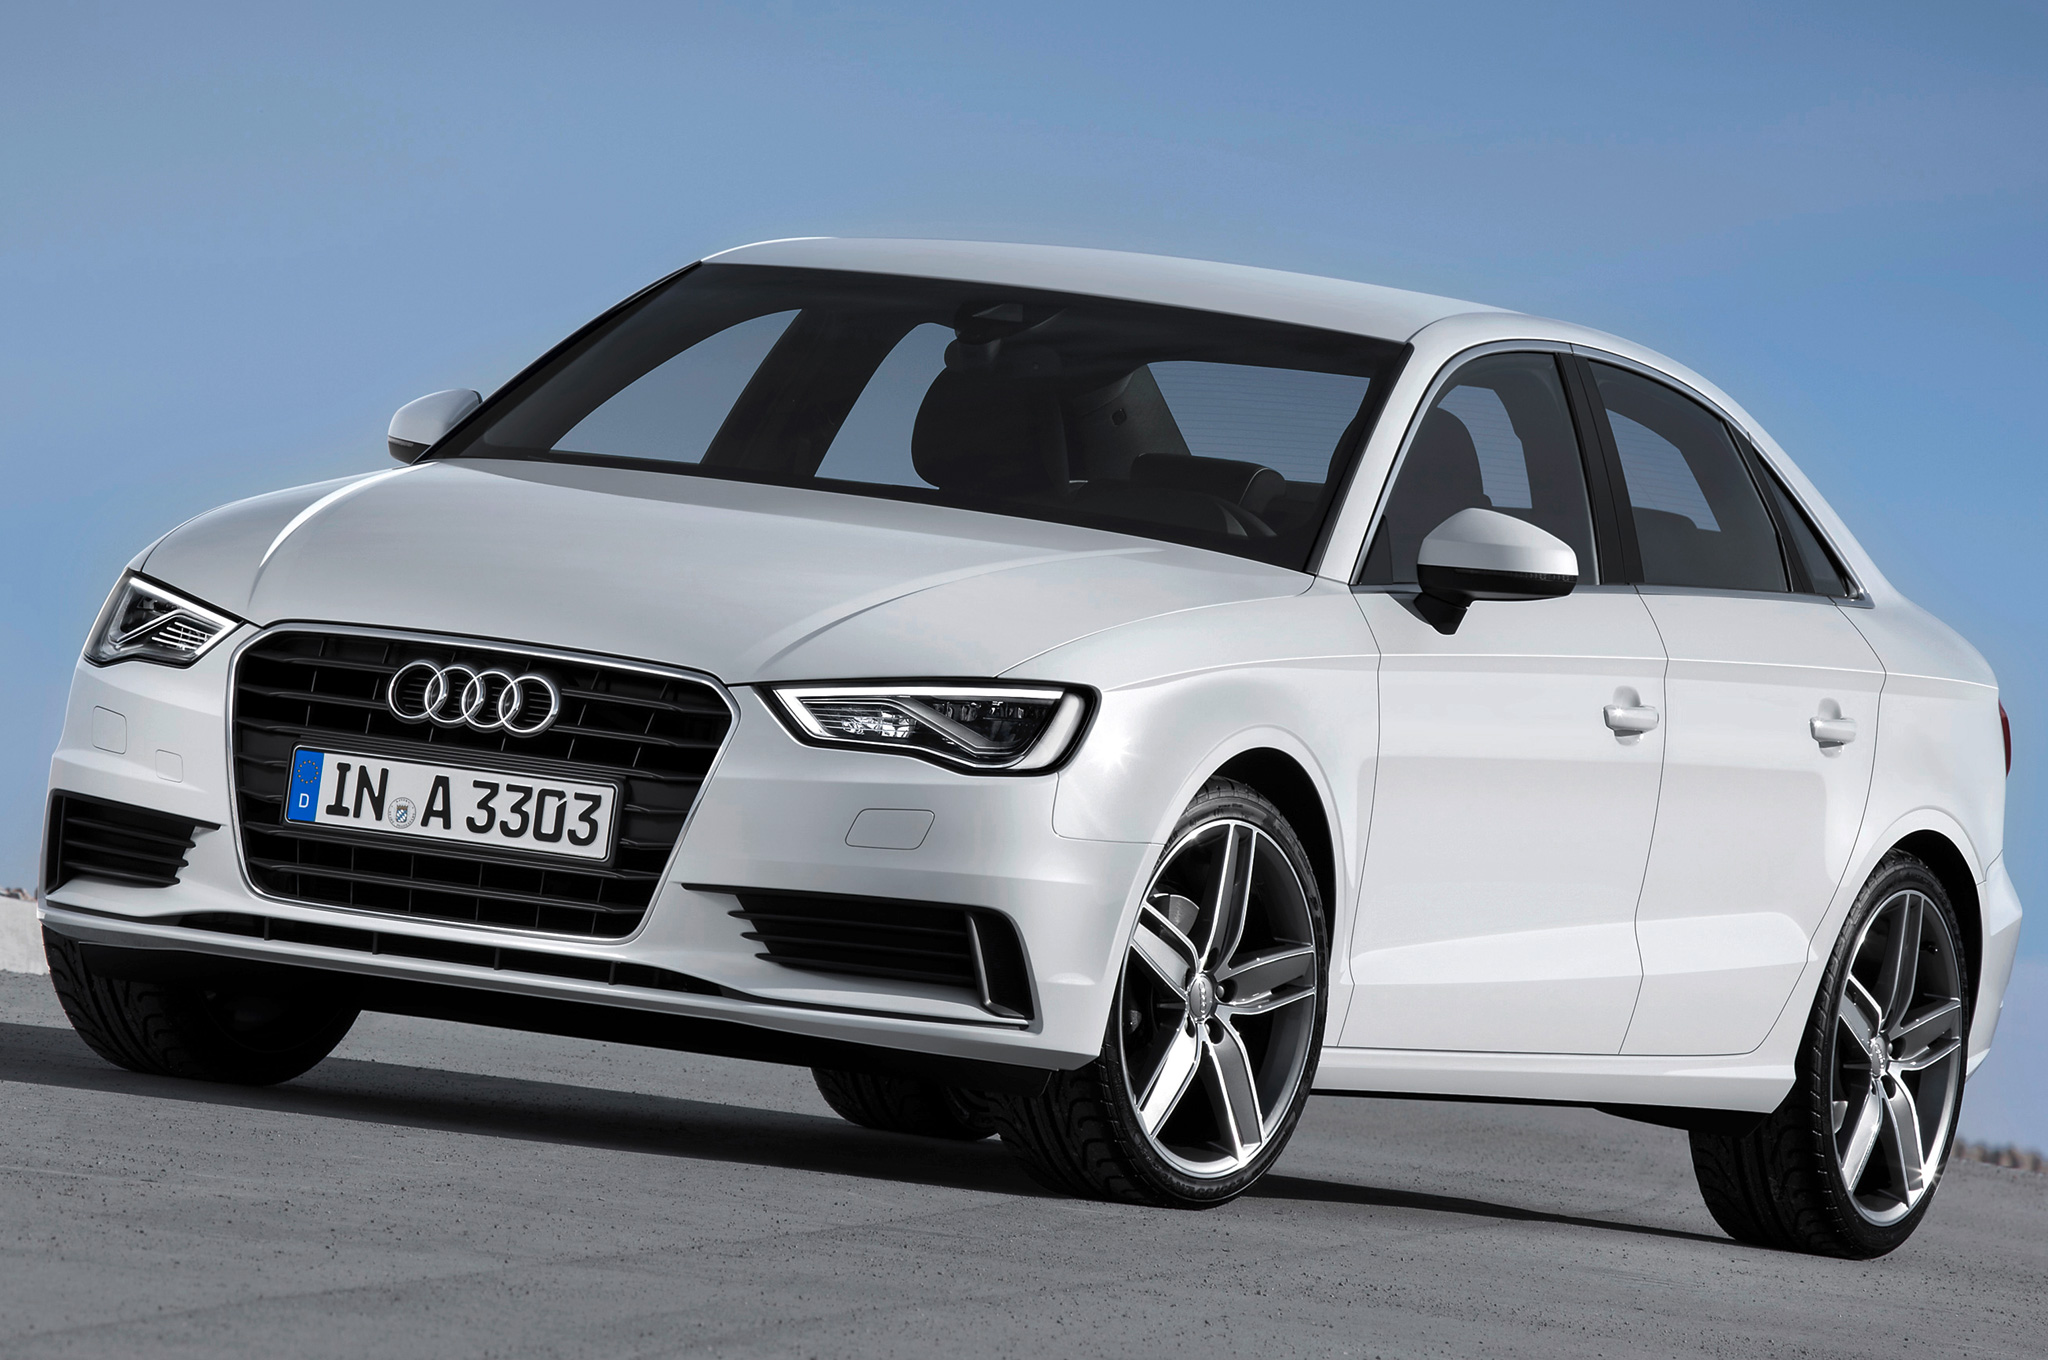 audi a3 pictures #13